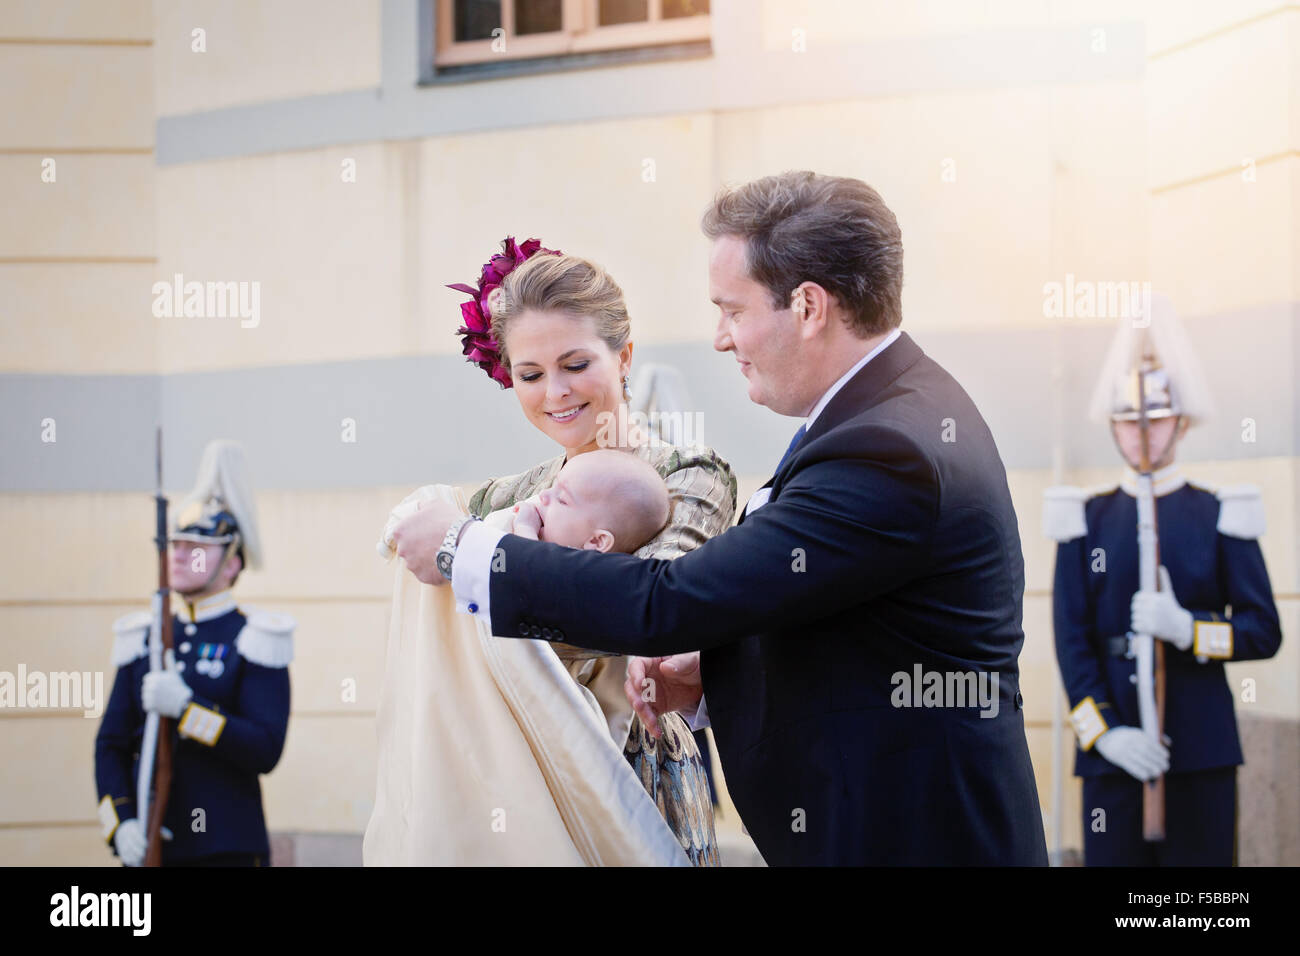 Royal Baptism in Sweden October 2015 - Princess Madeleine of Sweden, with Prince Nicolas and husband Chris O'Neill - Stock Image